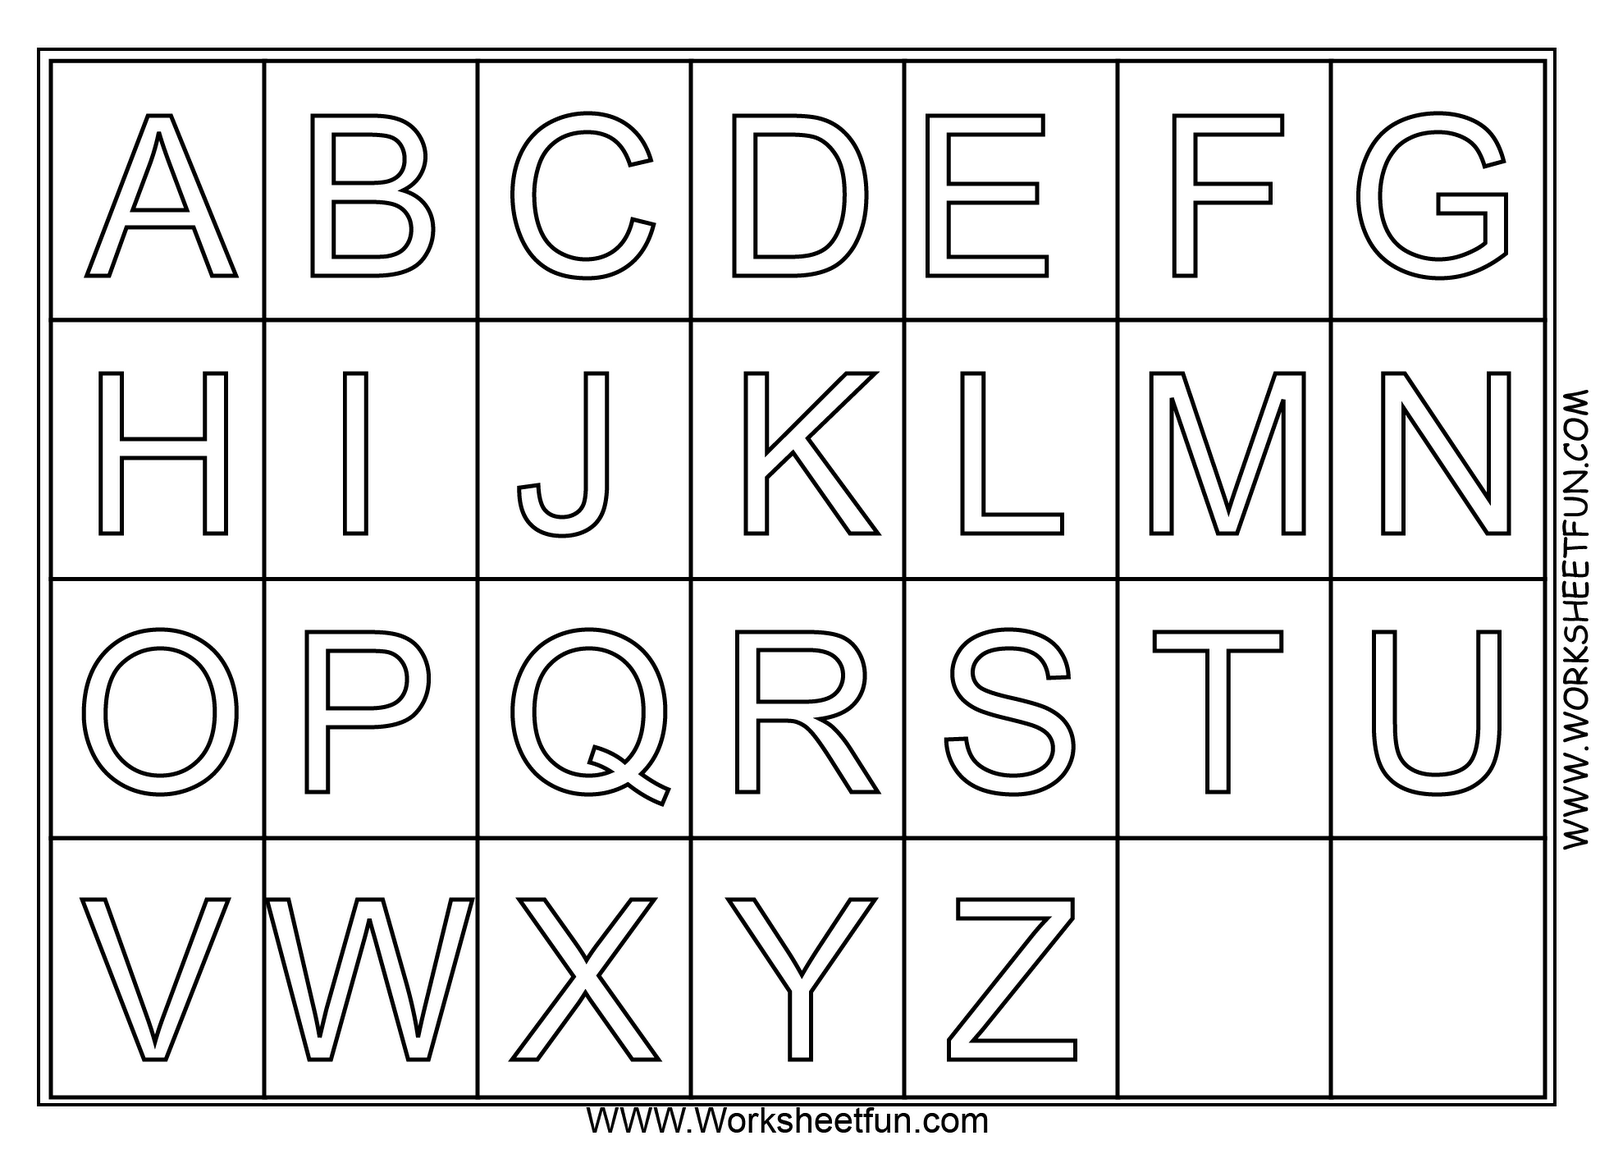 Printables Pre K Alphabet Worksheets 1000 images about prek on pinterest worksheets for kindergarten preschool and math worksheets